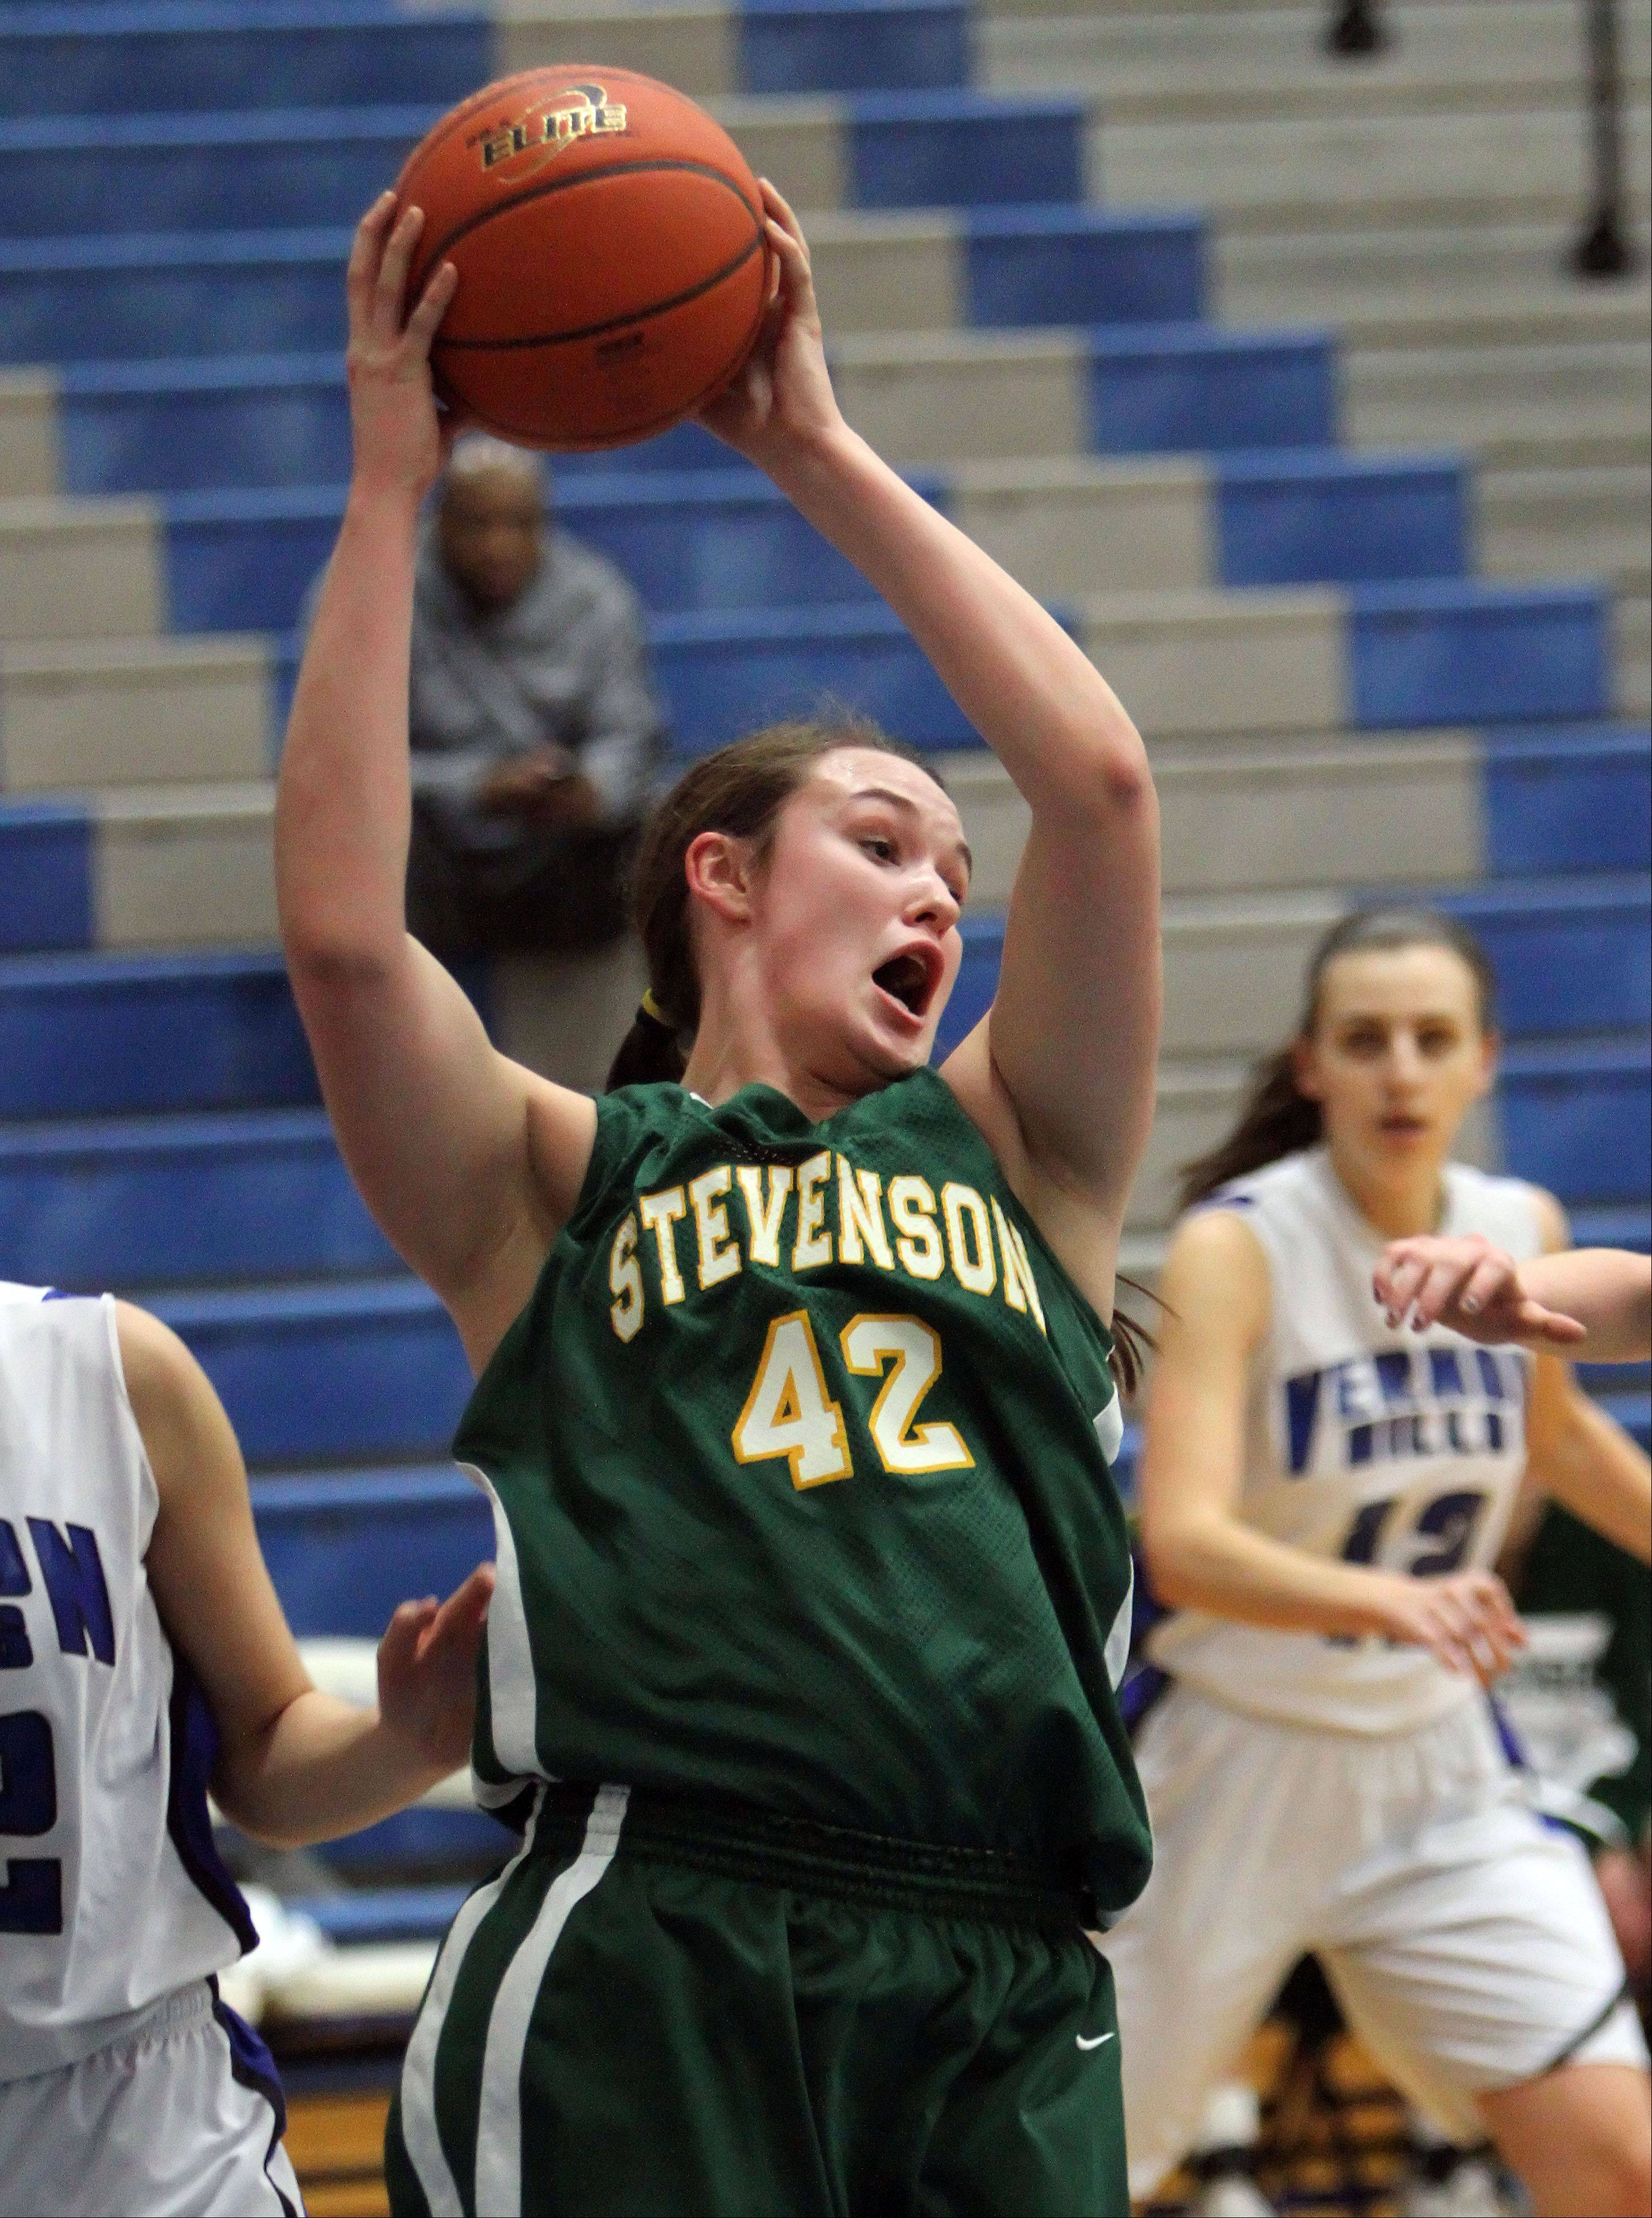 Stevenson's Alex Elzinga pulls down a rebound Tuesday night at Vernon Hills.